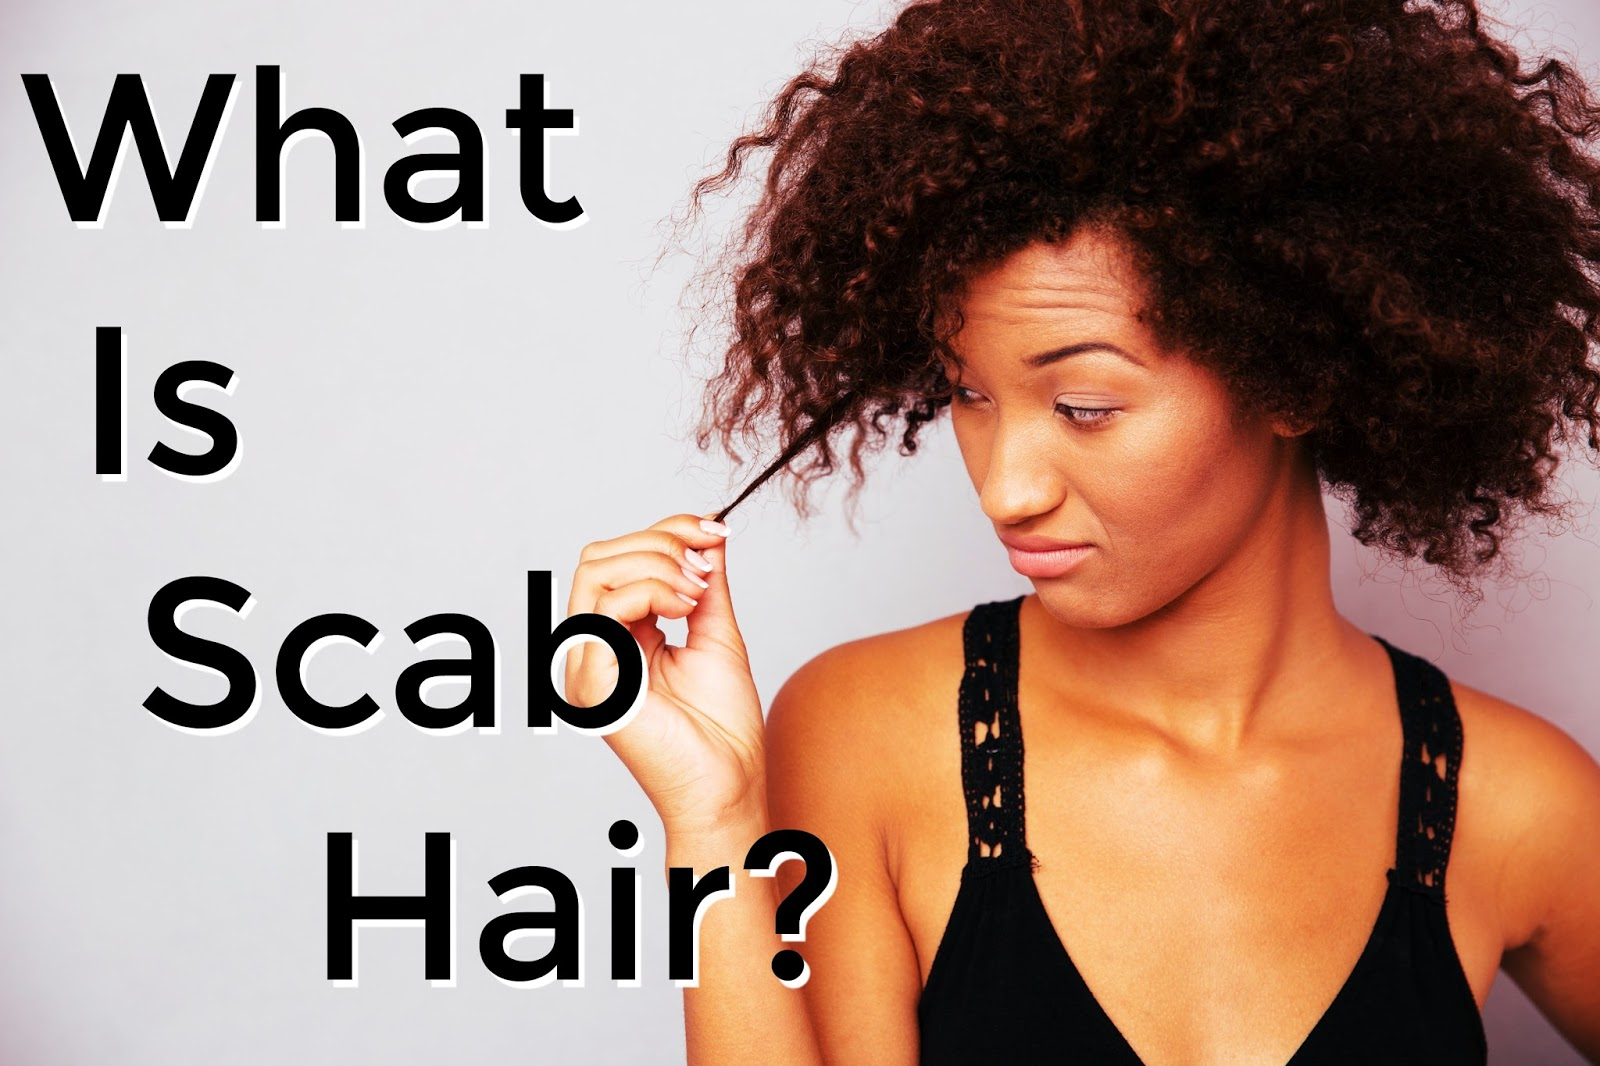 What Is Scab Hair? Natural Hair Term You Need To Know. There are several terms that new naturals are unfamiliar with and scab hair is one you need to know.